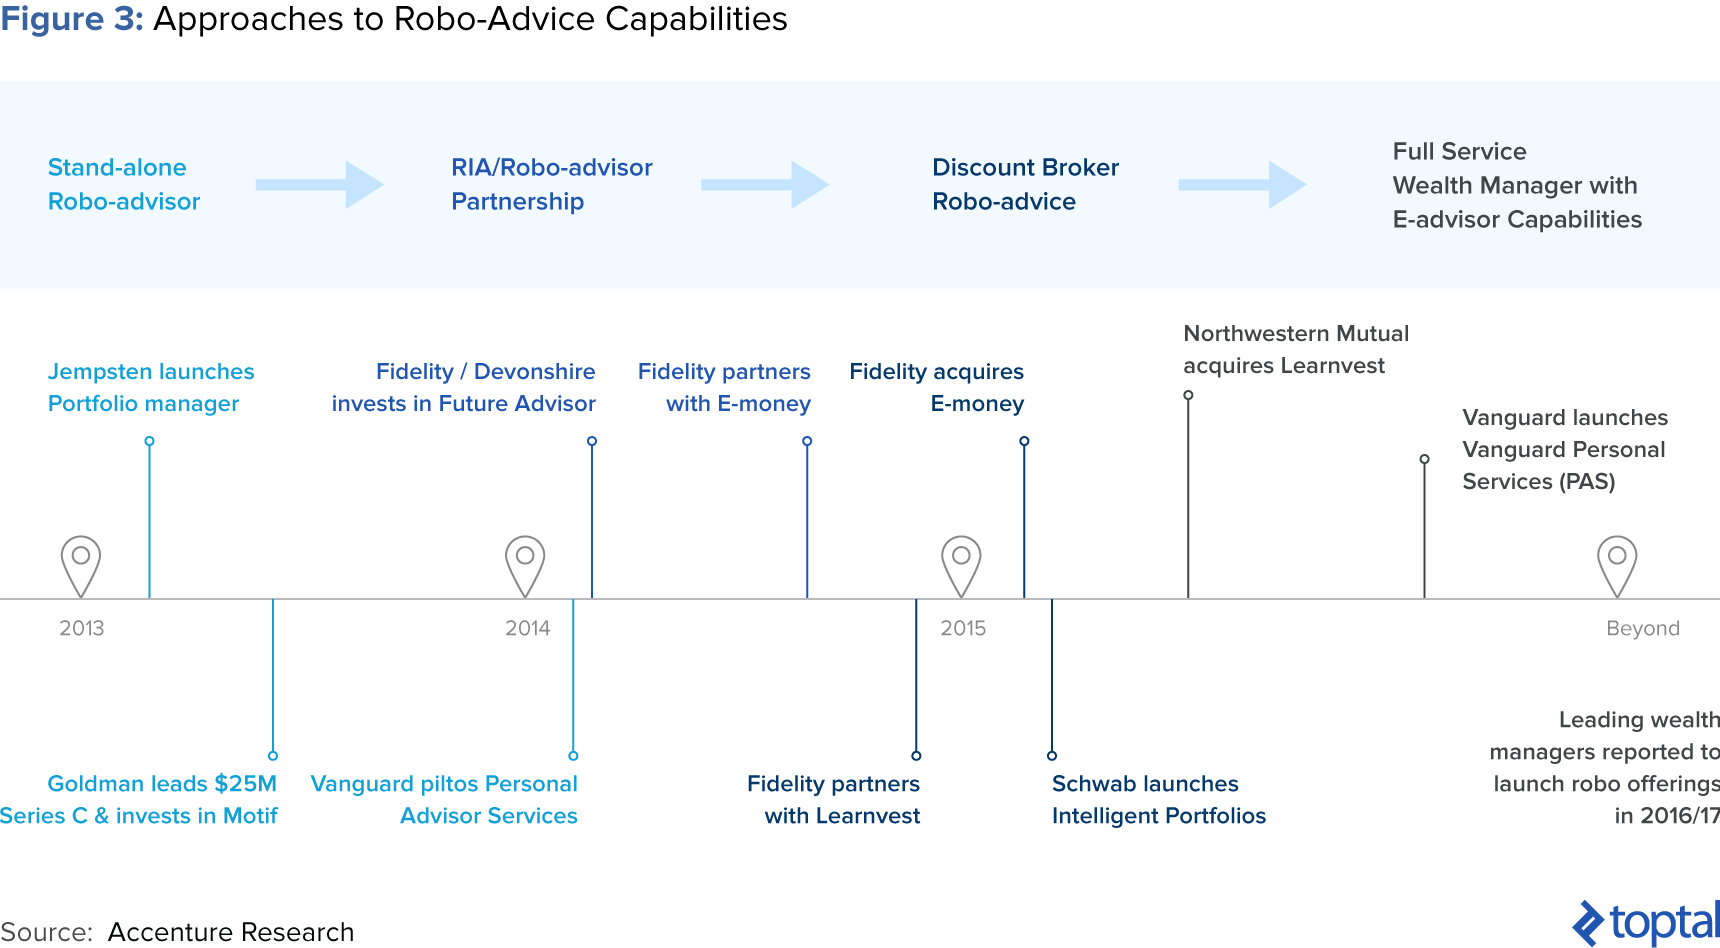 Figure 3: Approaches to Robo-advice Capabilities